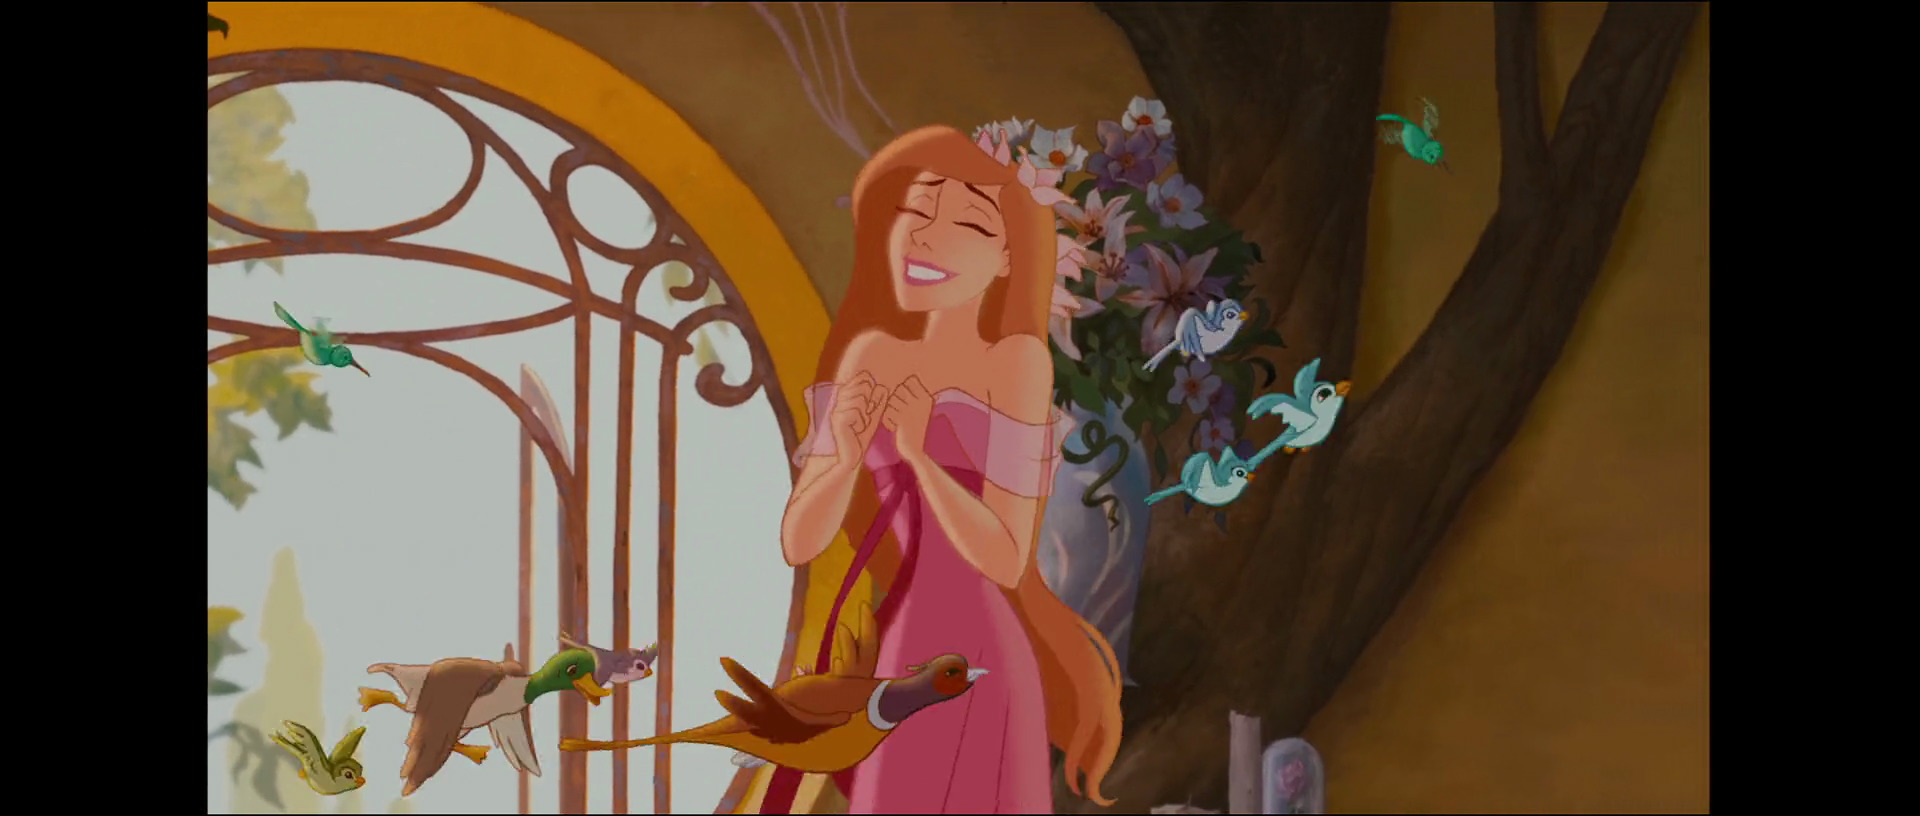 snap image enchanted tales disneyscreencapscom 3547jpg